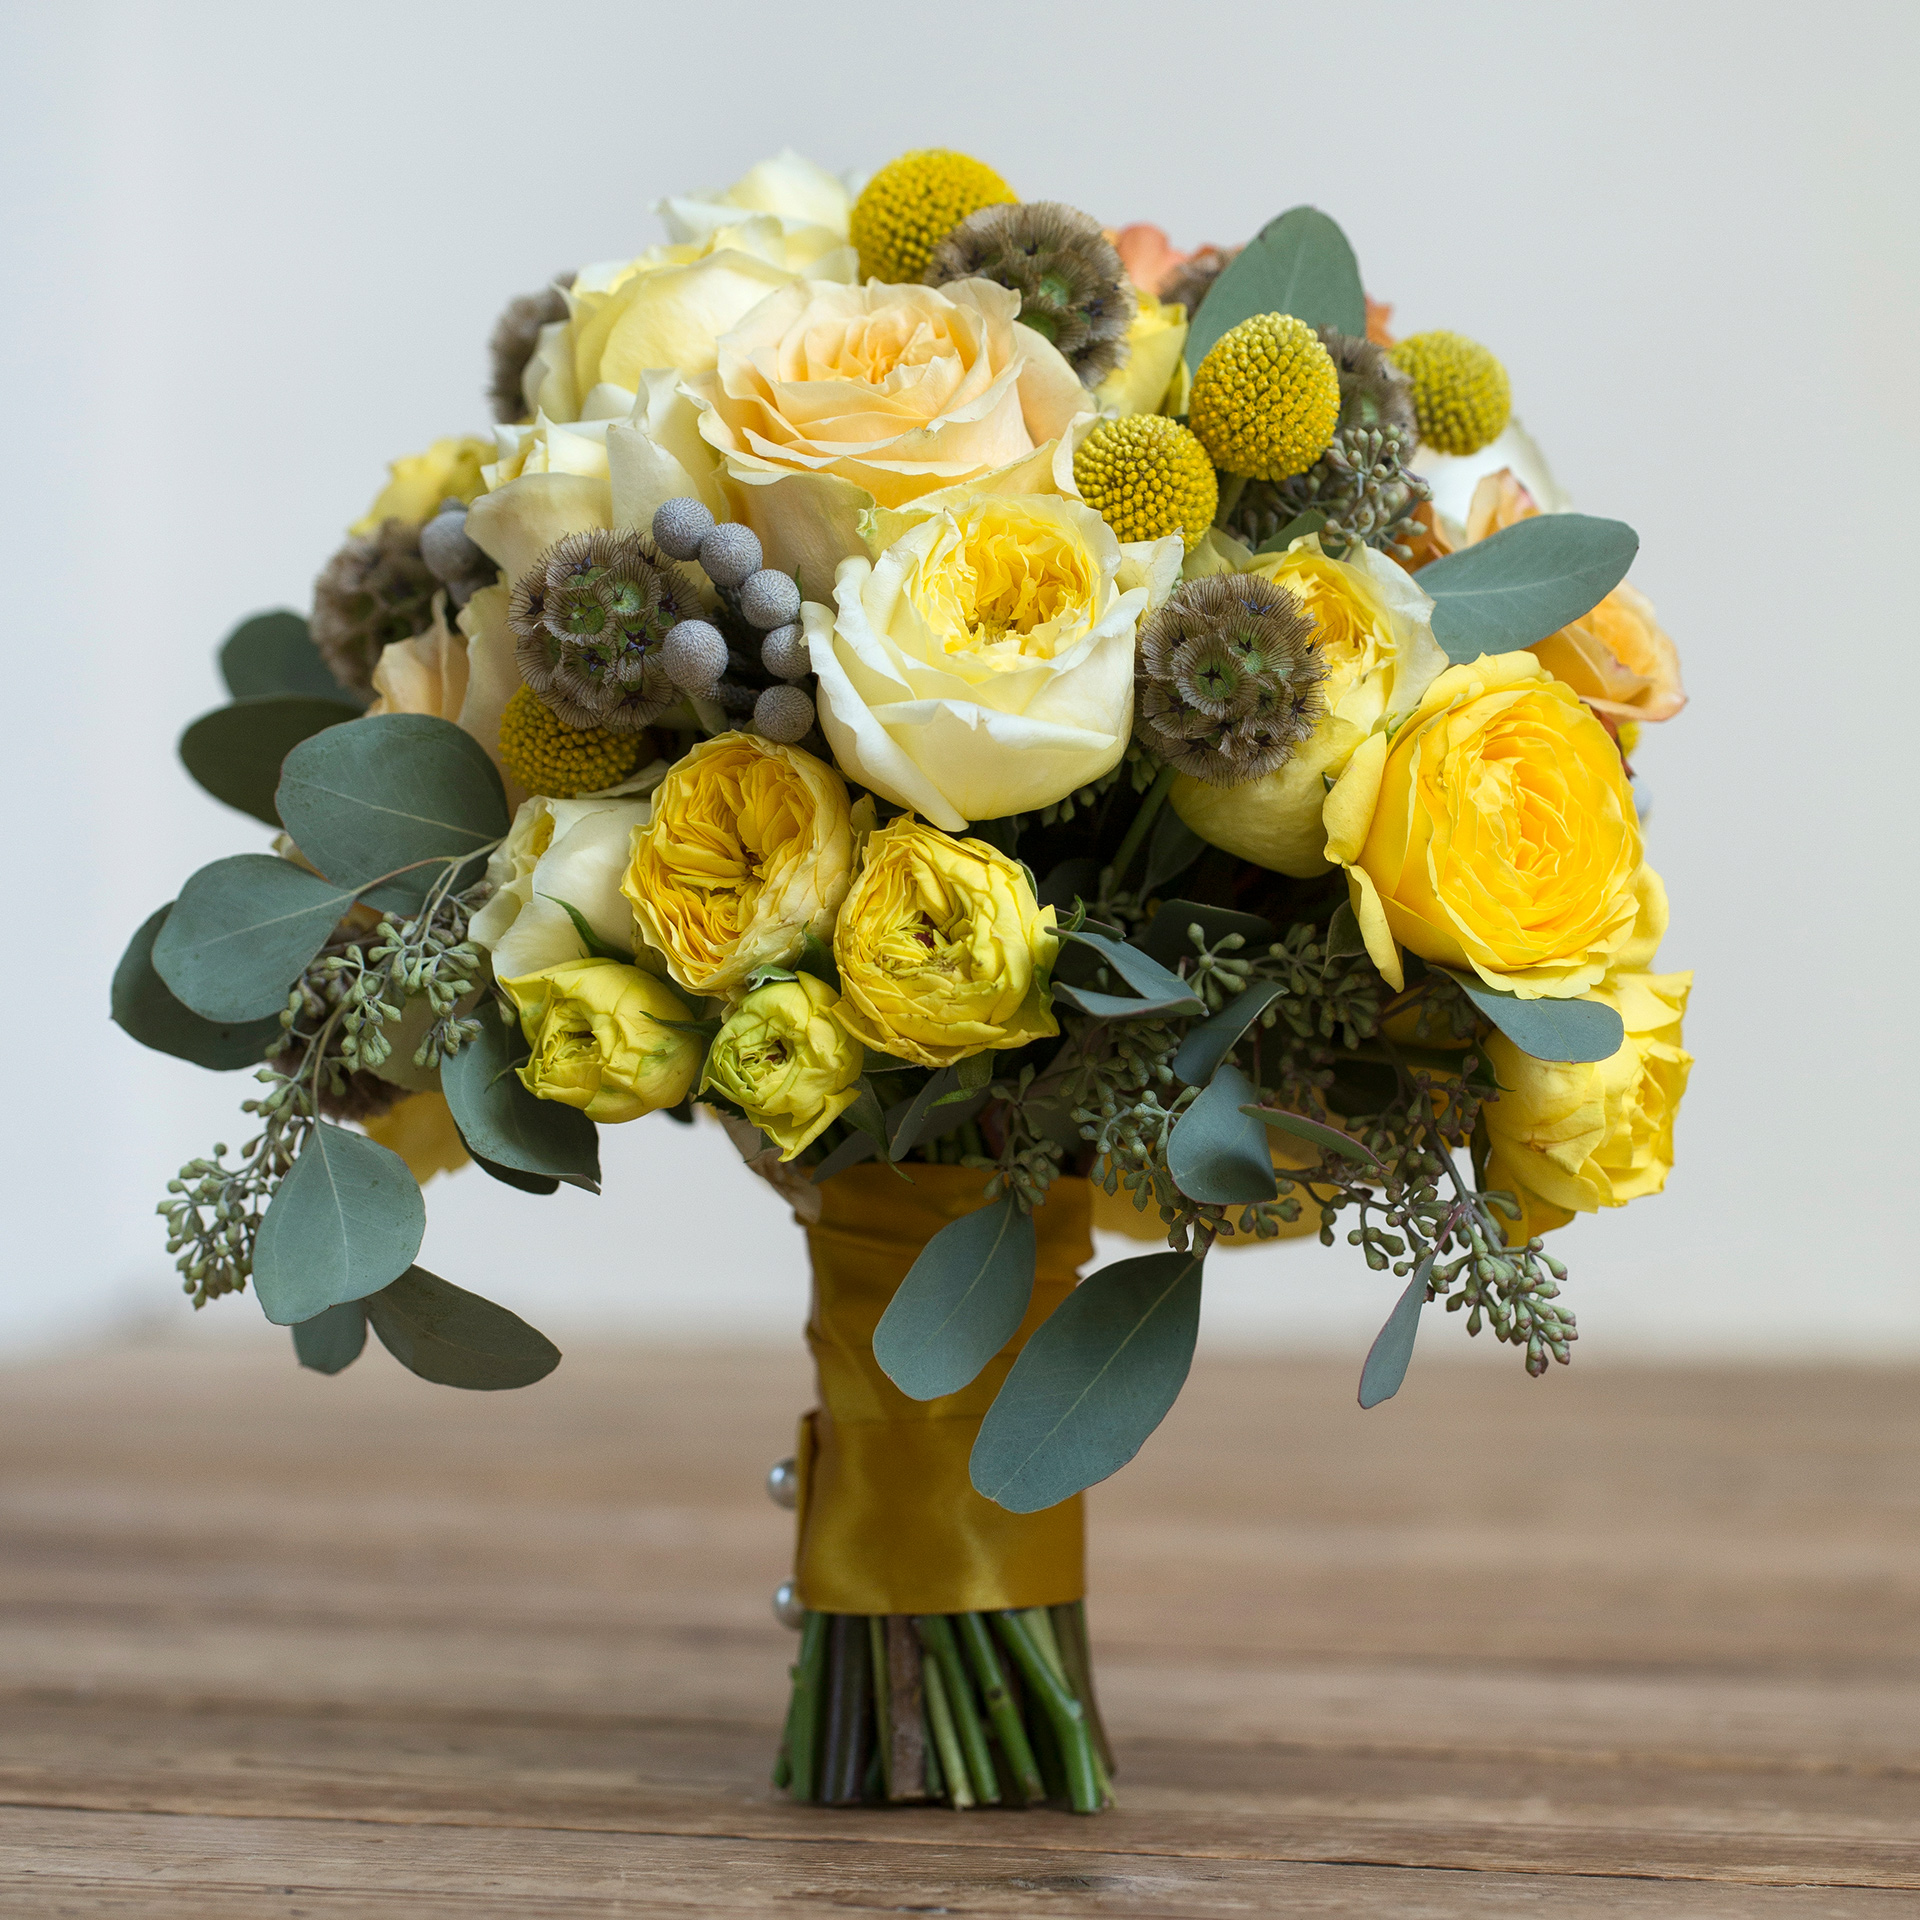 Lovely bouquet featuring Toulouse Lautrec roses.